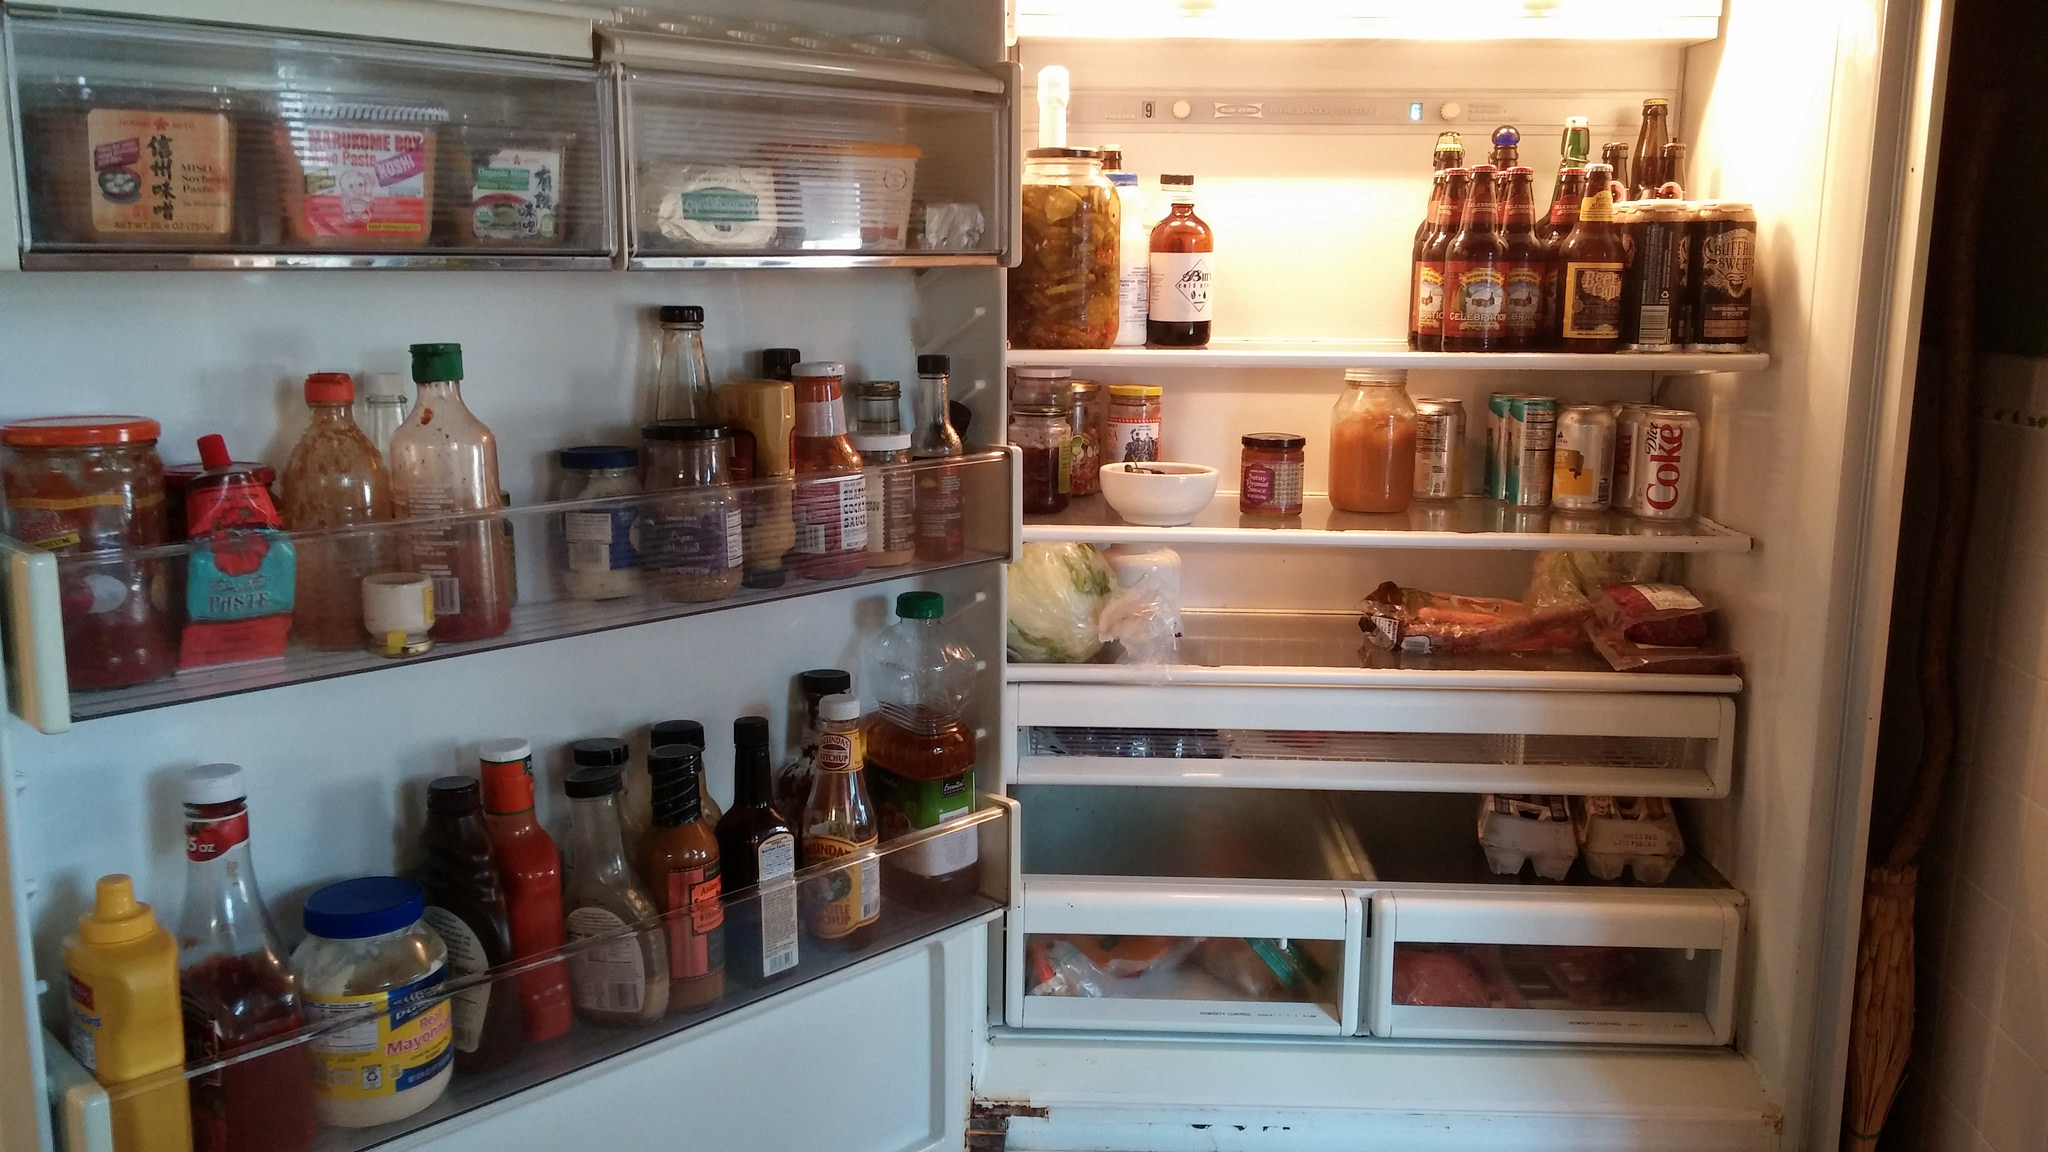 """I feel like I just posted one of those """"find the 43 differences"""" games. And yes, that is a very large jar of pickles on the top shelf. Blame Costco."""